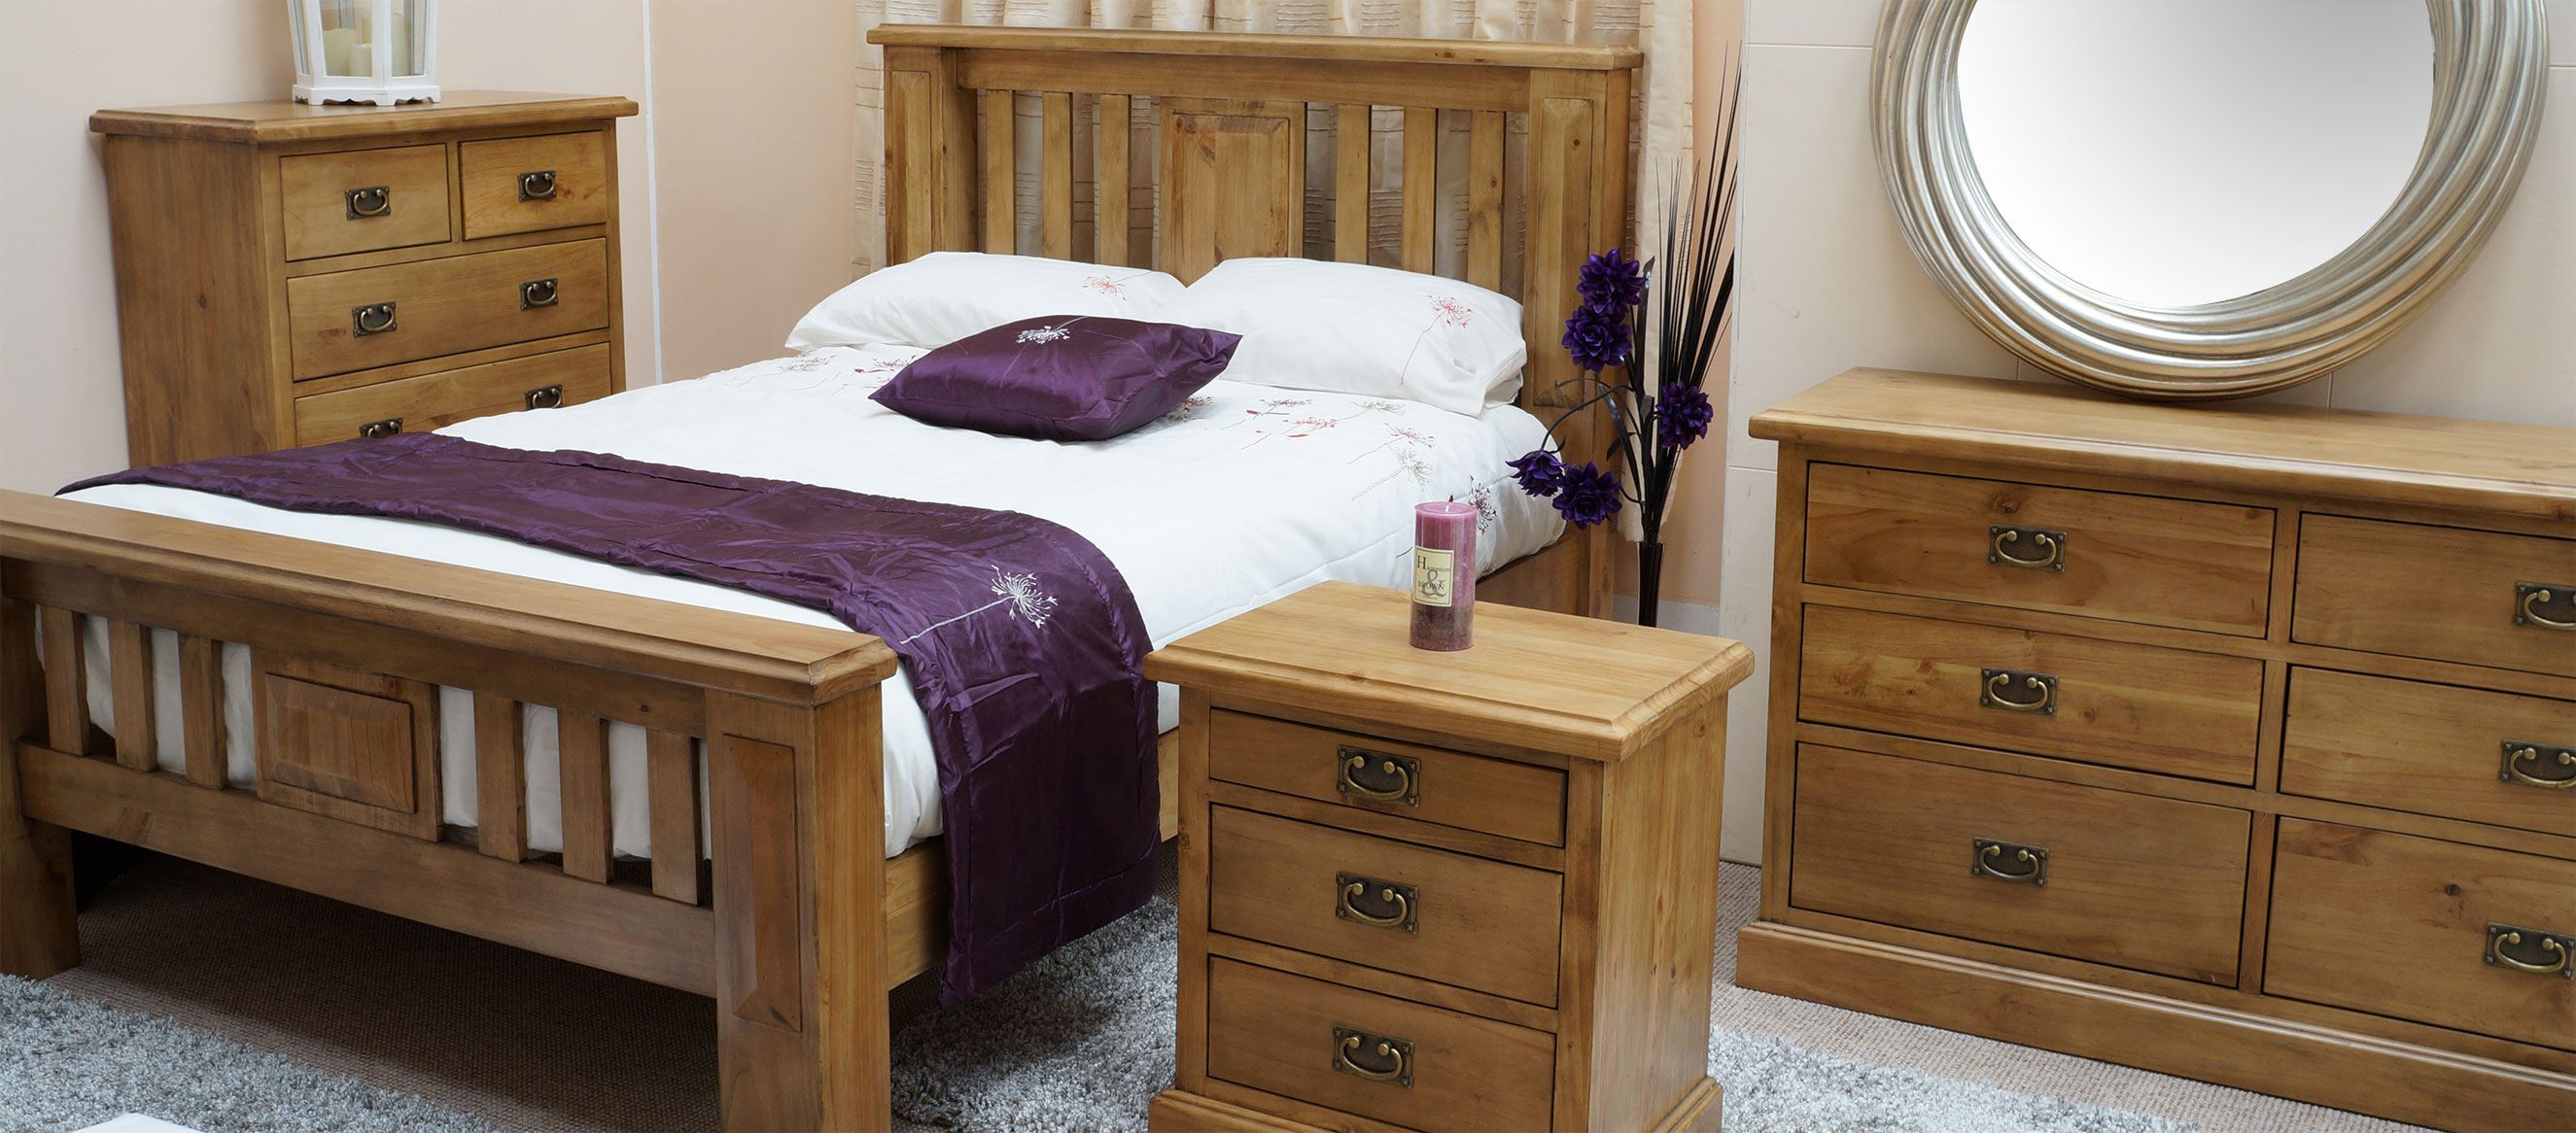 Queensland Range Bedroom furniture